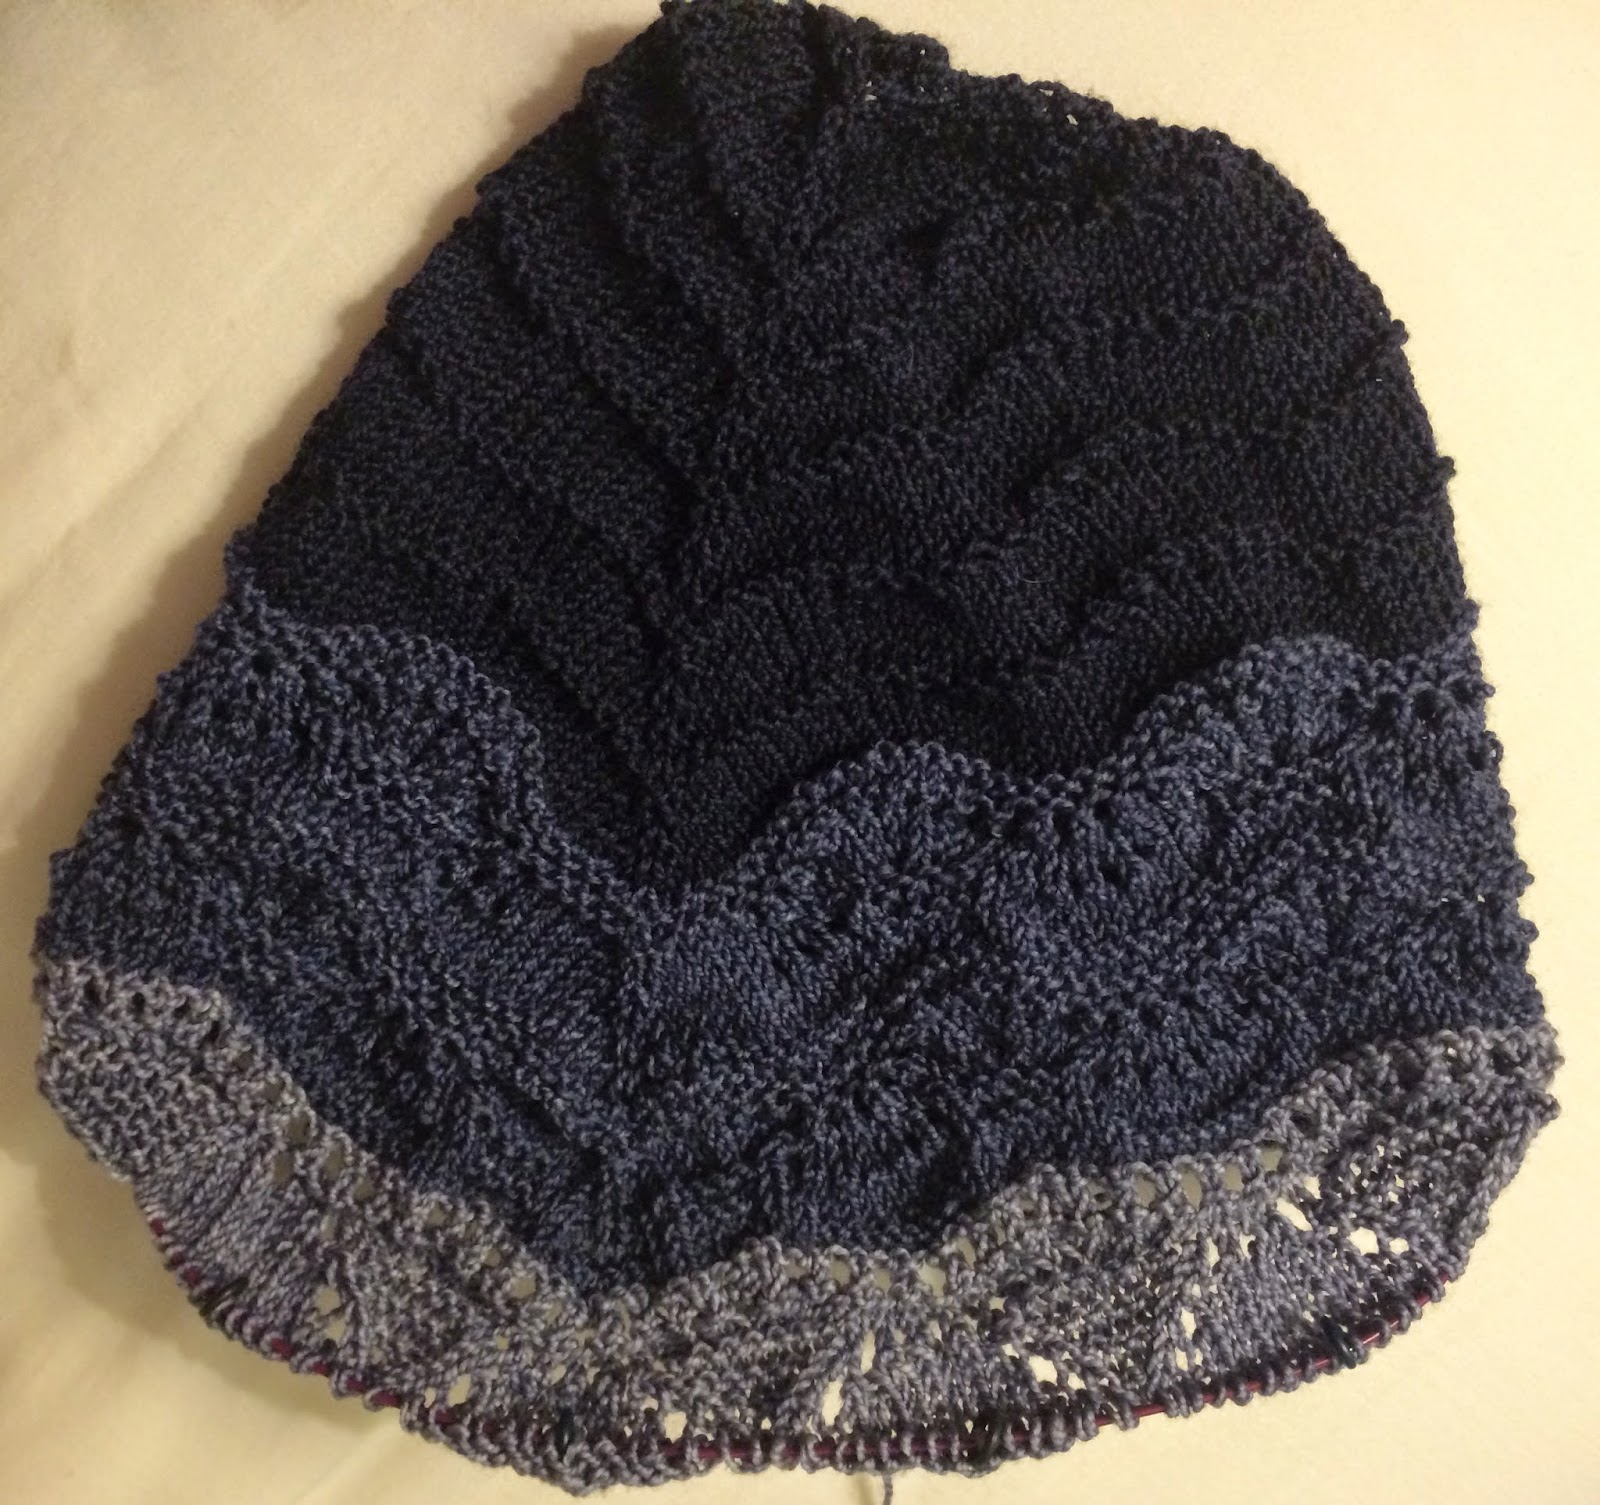 Brush Creek Cowlette from The Knitting Nest - Day 4 7